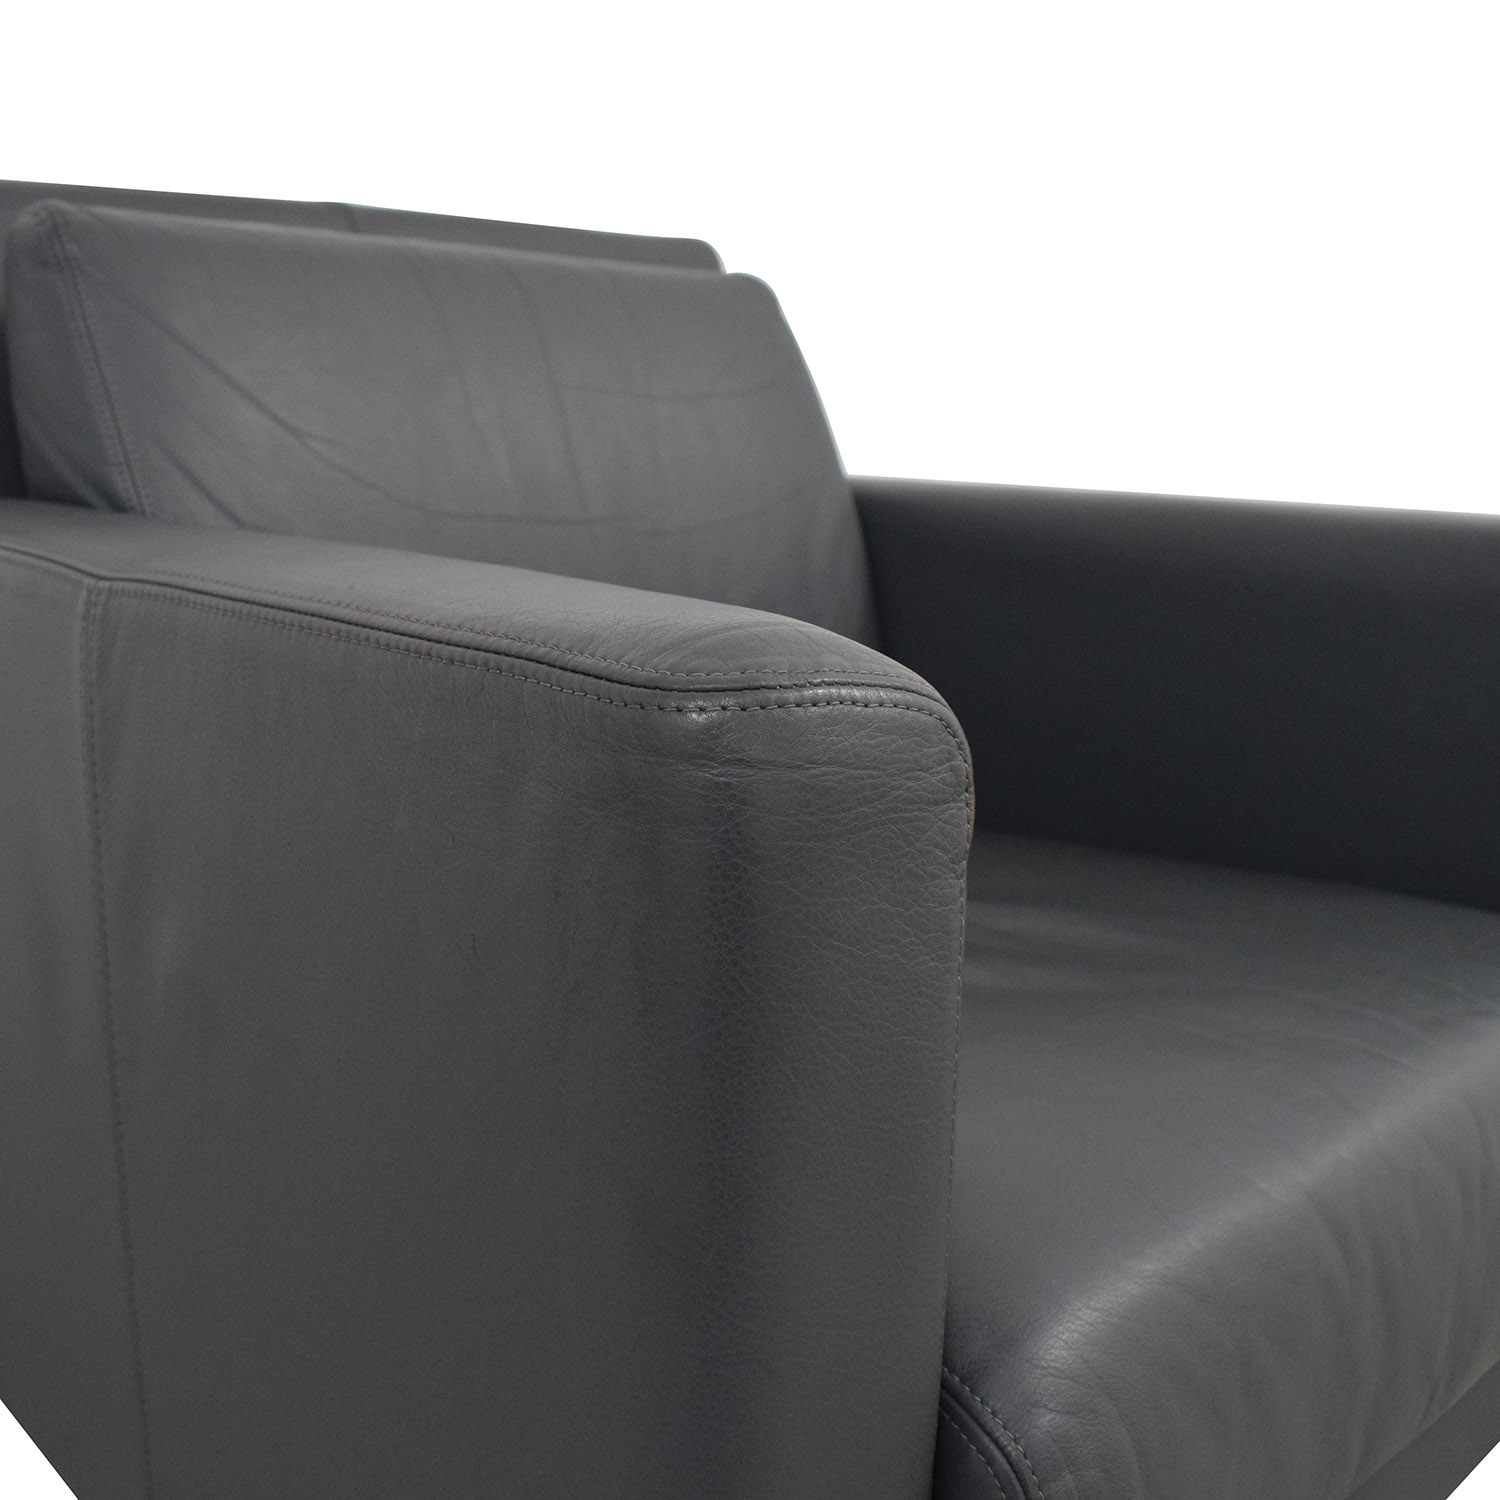 Steelcase Steelcase Coalesse Lounge Chair coupon